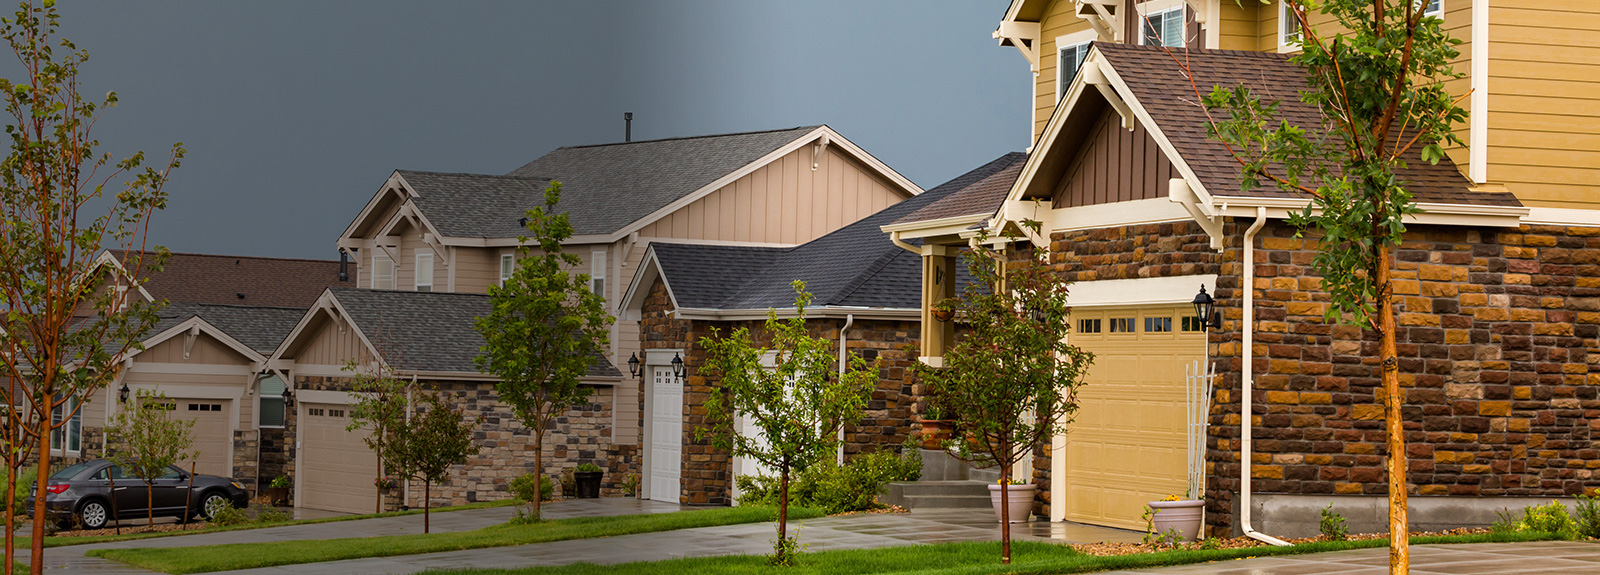 Home Warranty and Insurance companies in Colorado